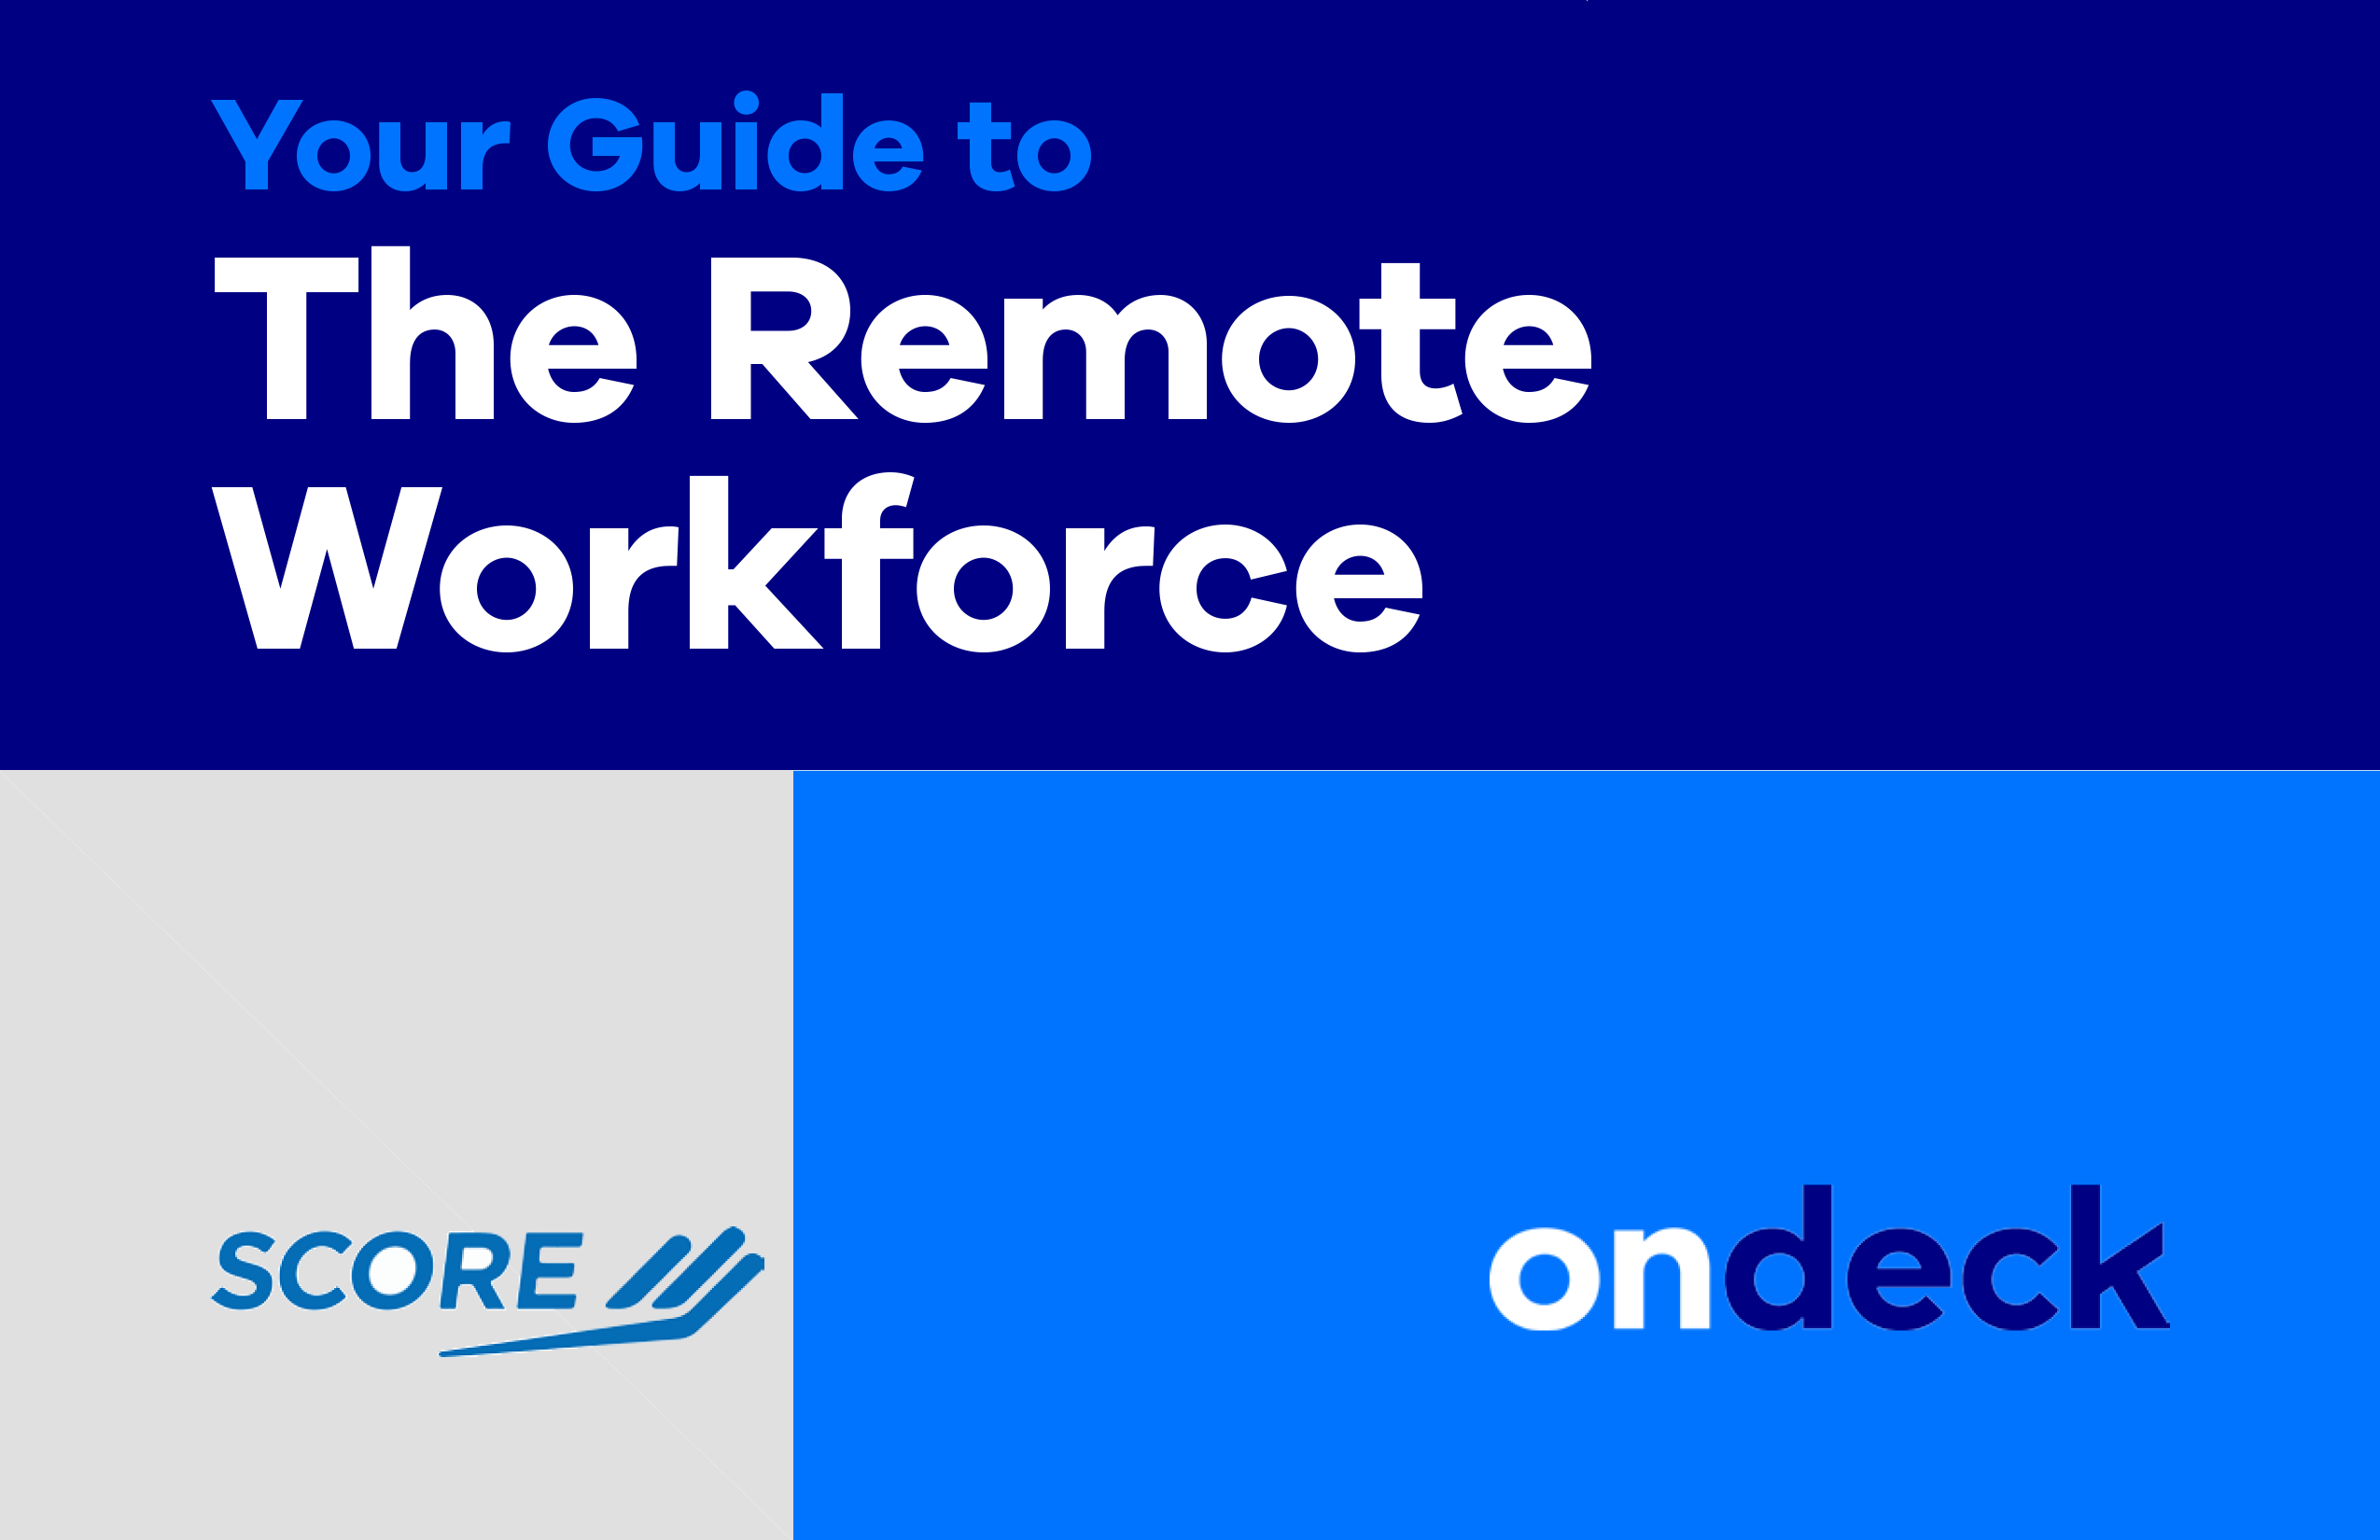 Your Guide to The Remote Workforce